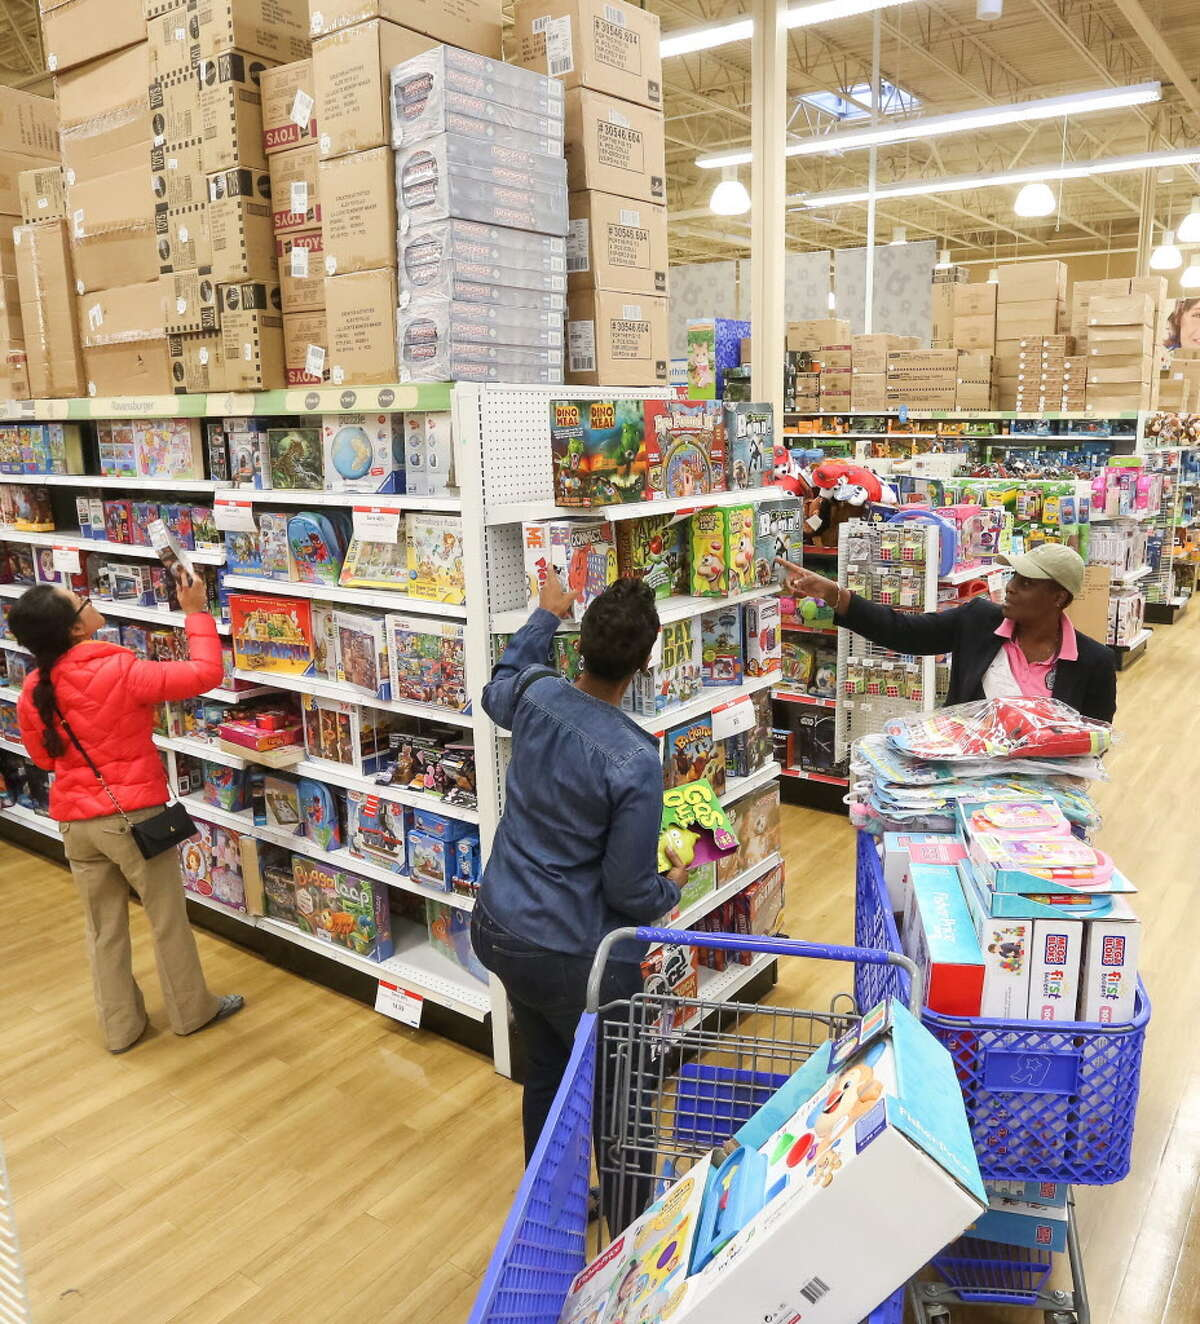 Theresa Sackey, right, and her step-sister Bridgette Laryea, center, shop for toys to send to Ghana, at a Toys R Us location on Black Friday, Friday, Nov. 25, 2016 in Houston. The pair were taking advantage of Black Friday sales to buy toys for children in Africa.